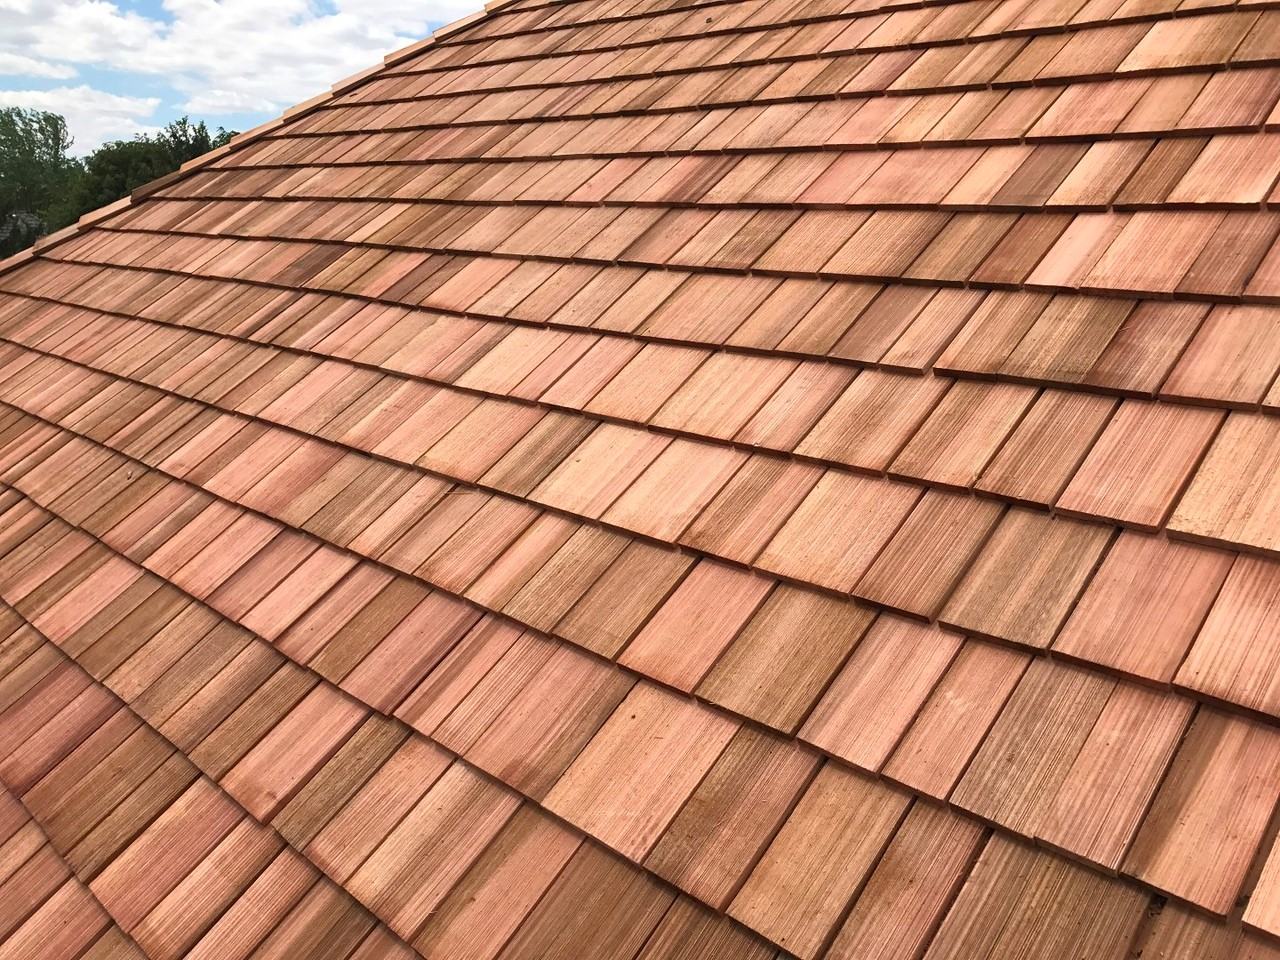 South Barrington IL Cedar roofing specialists